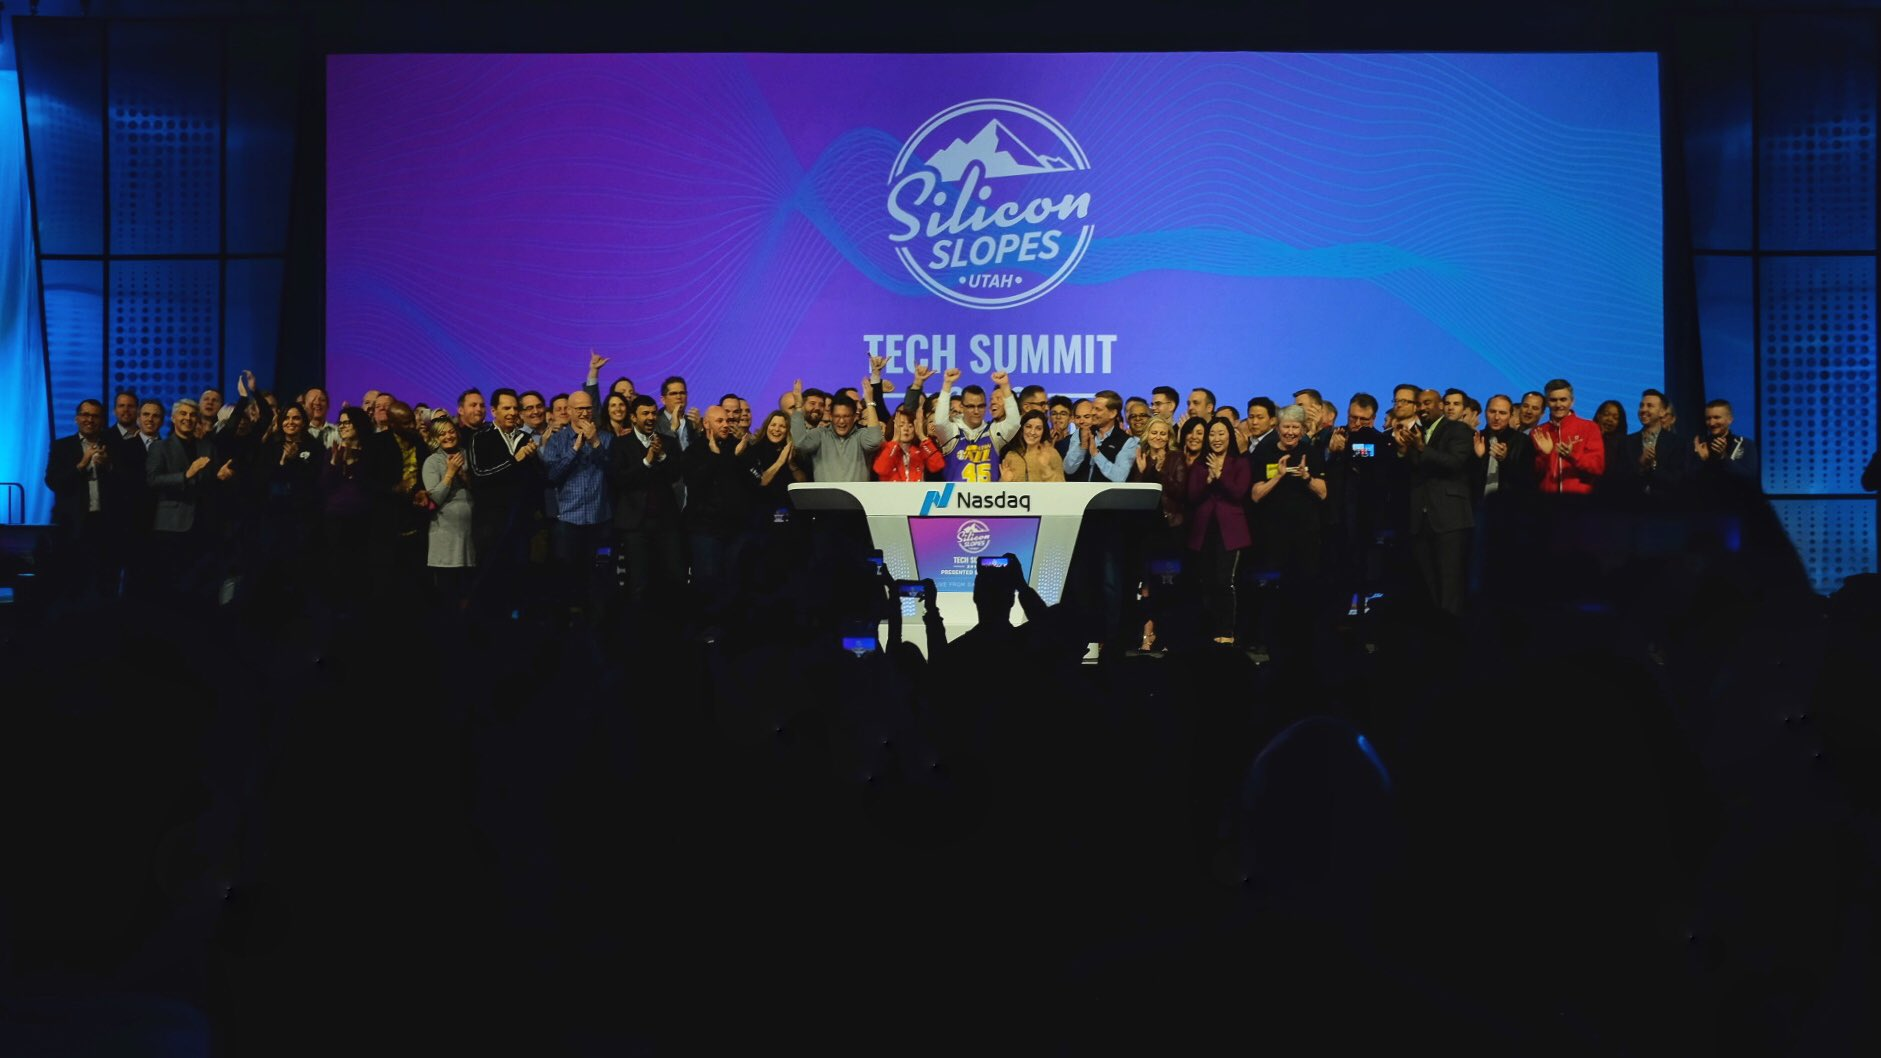 tech companies celebrate on stage at Silicon slopes tech summit